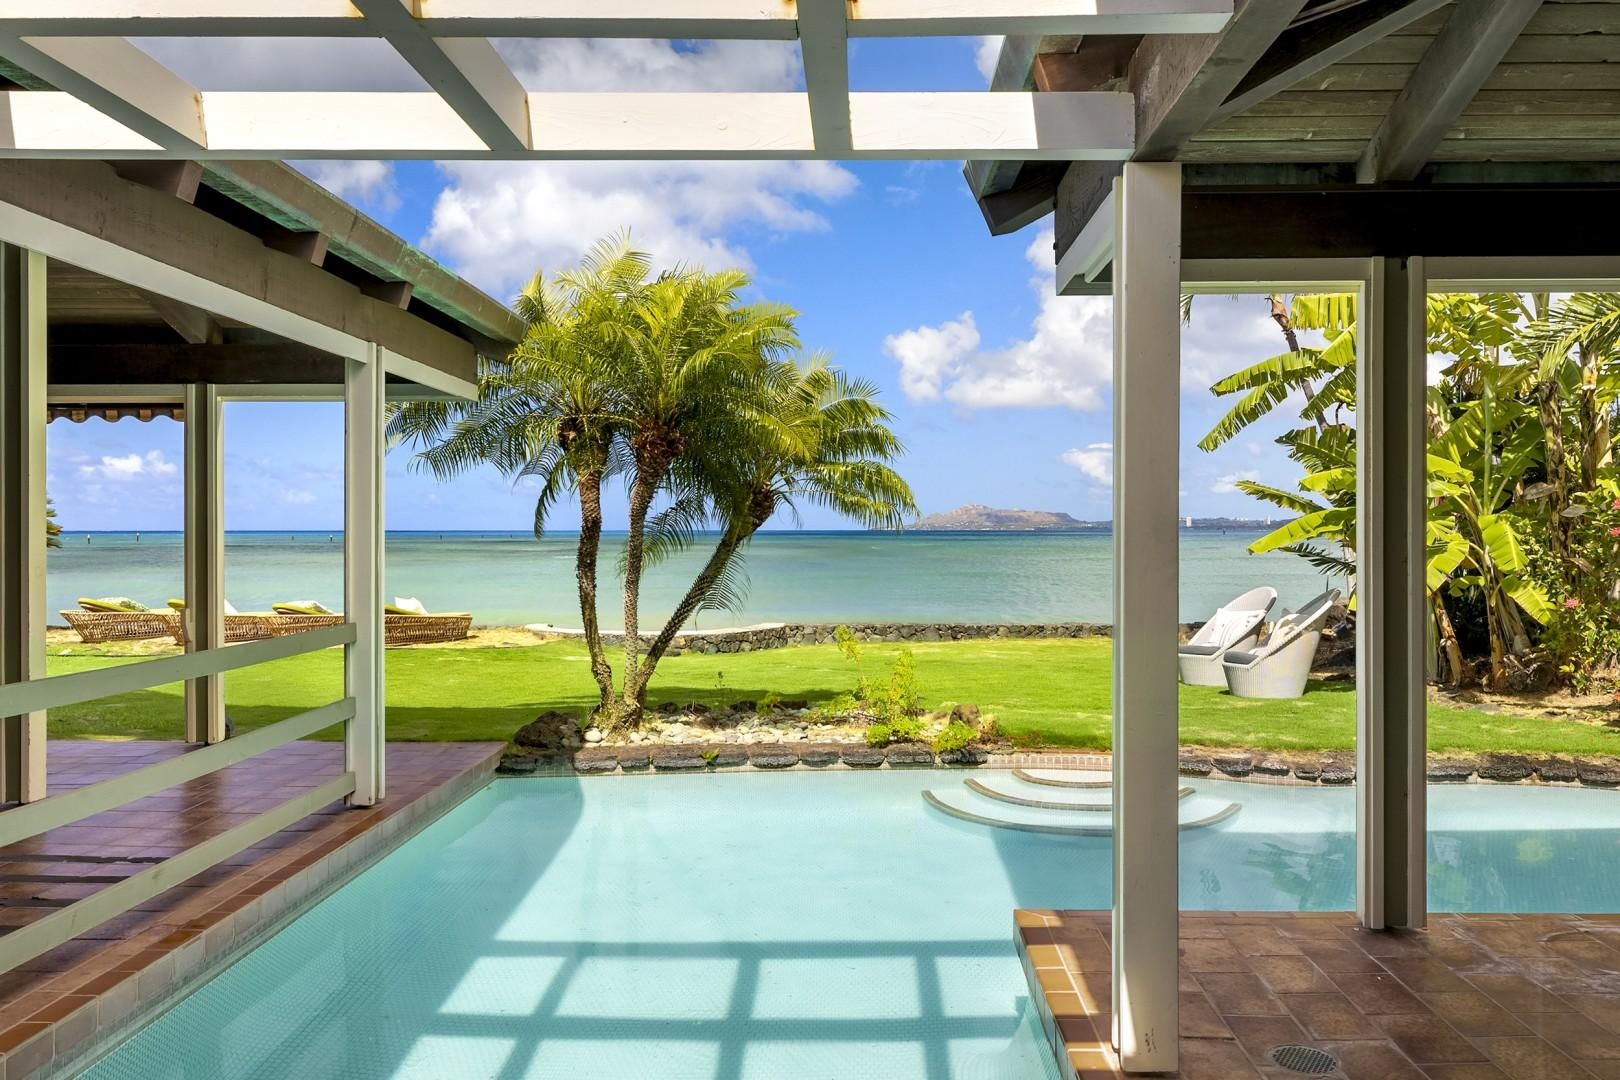 Covered Lanai connecting Master Suite to Main House looking out over pool towards ocean